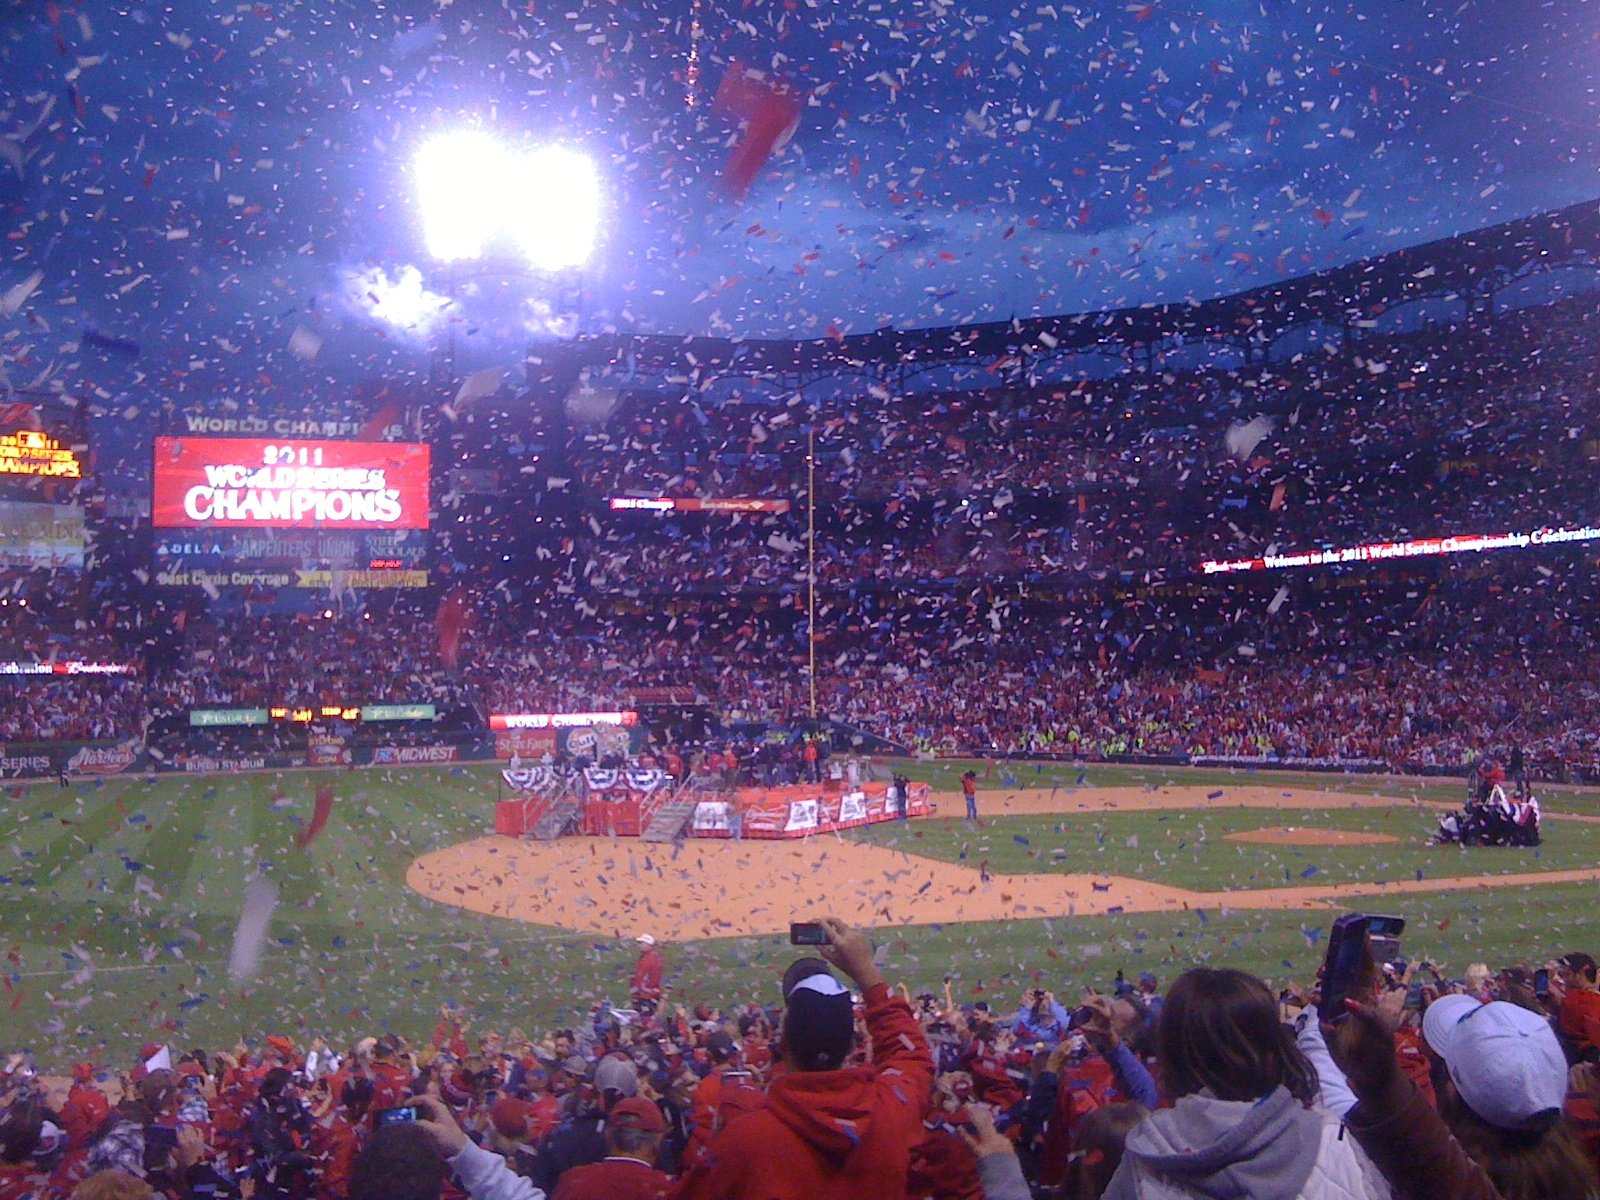 2011 Saint Louis Cardinals World Champions Celebration